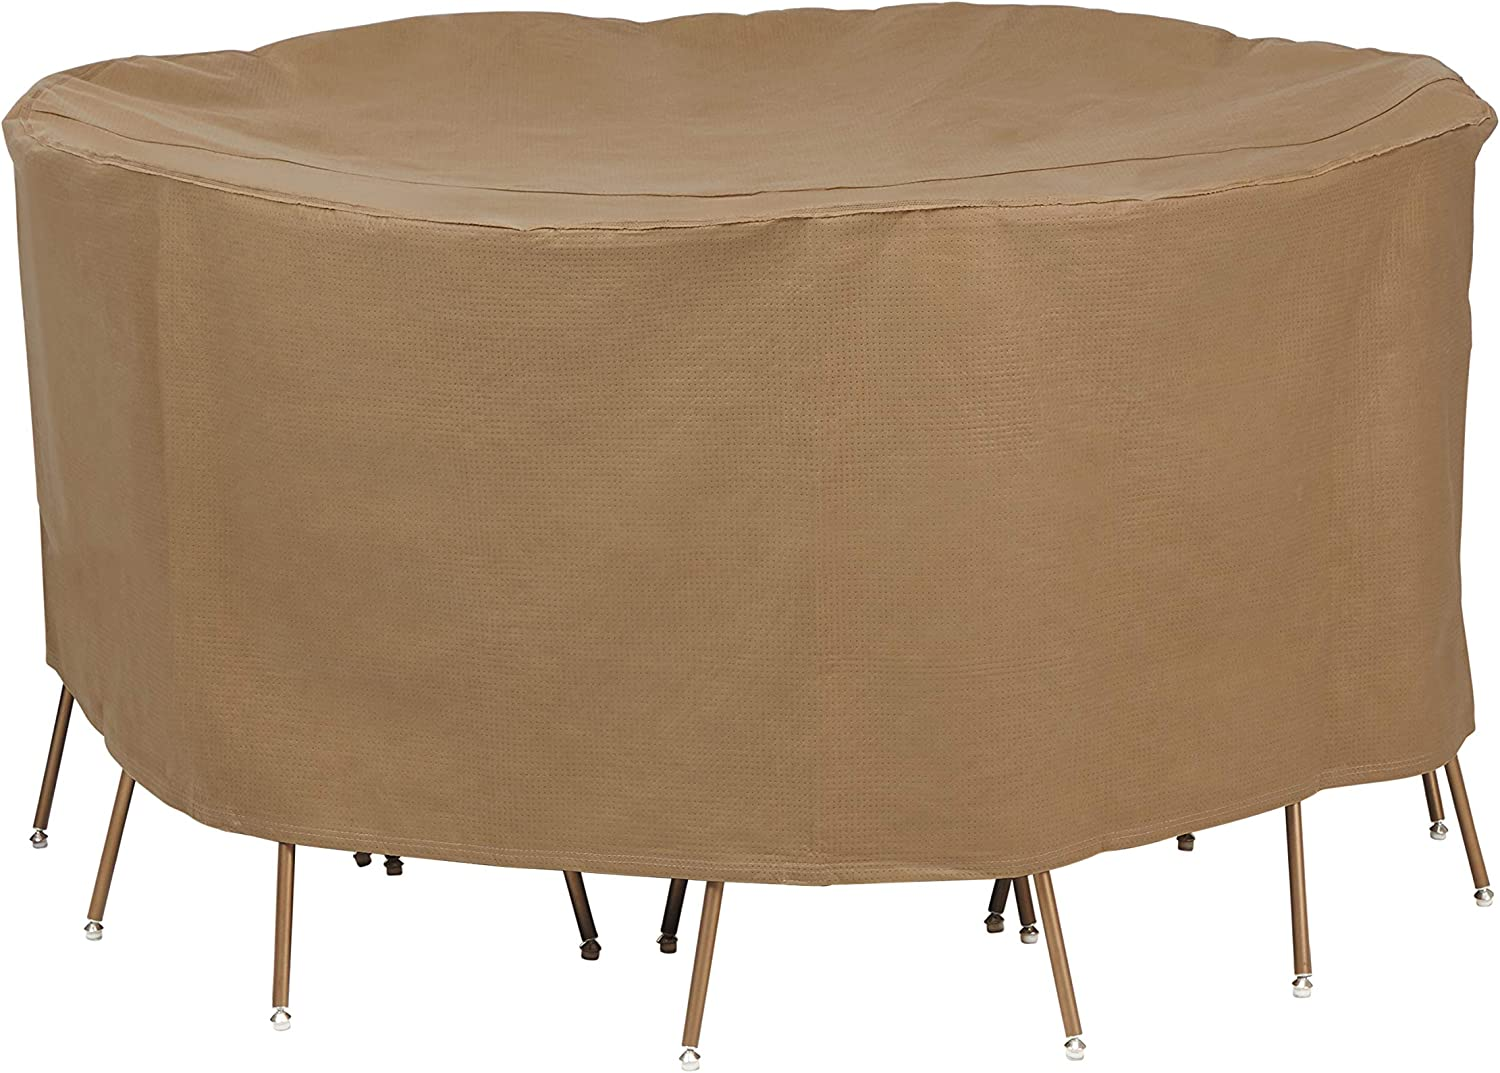 Duck Covers Essential Water-Resistant 108 Inch Round Patio Table & Chair Set Cover